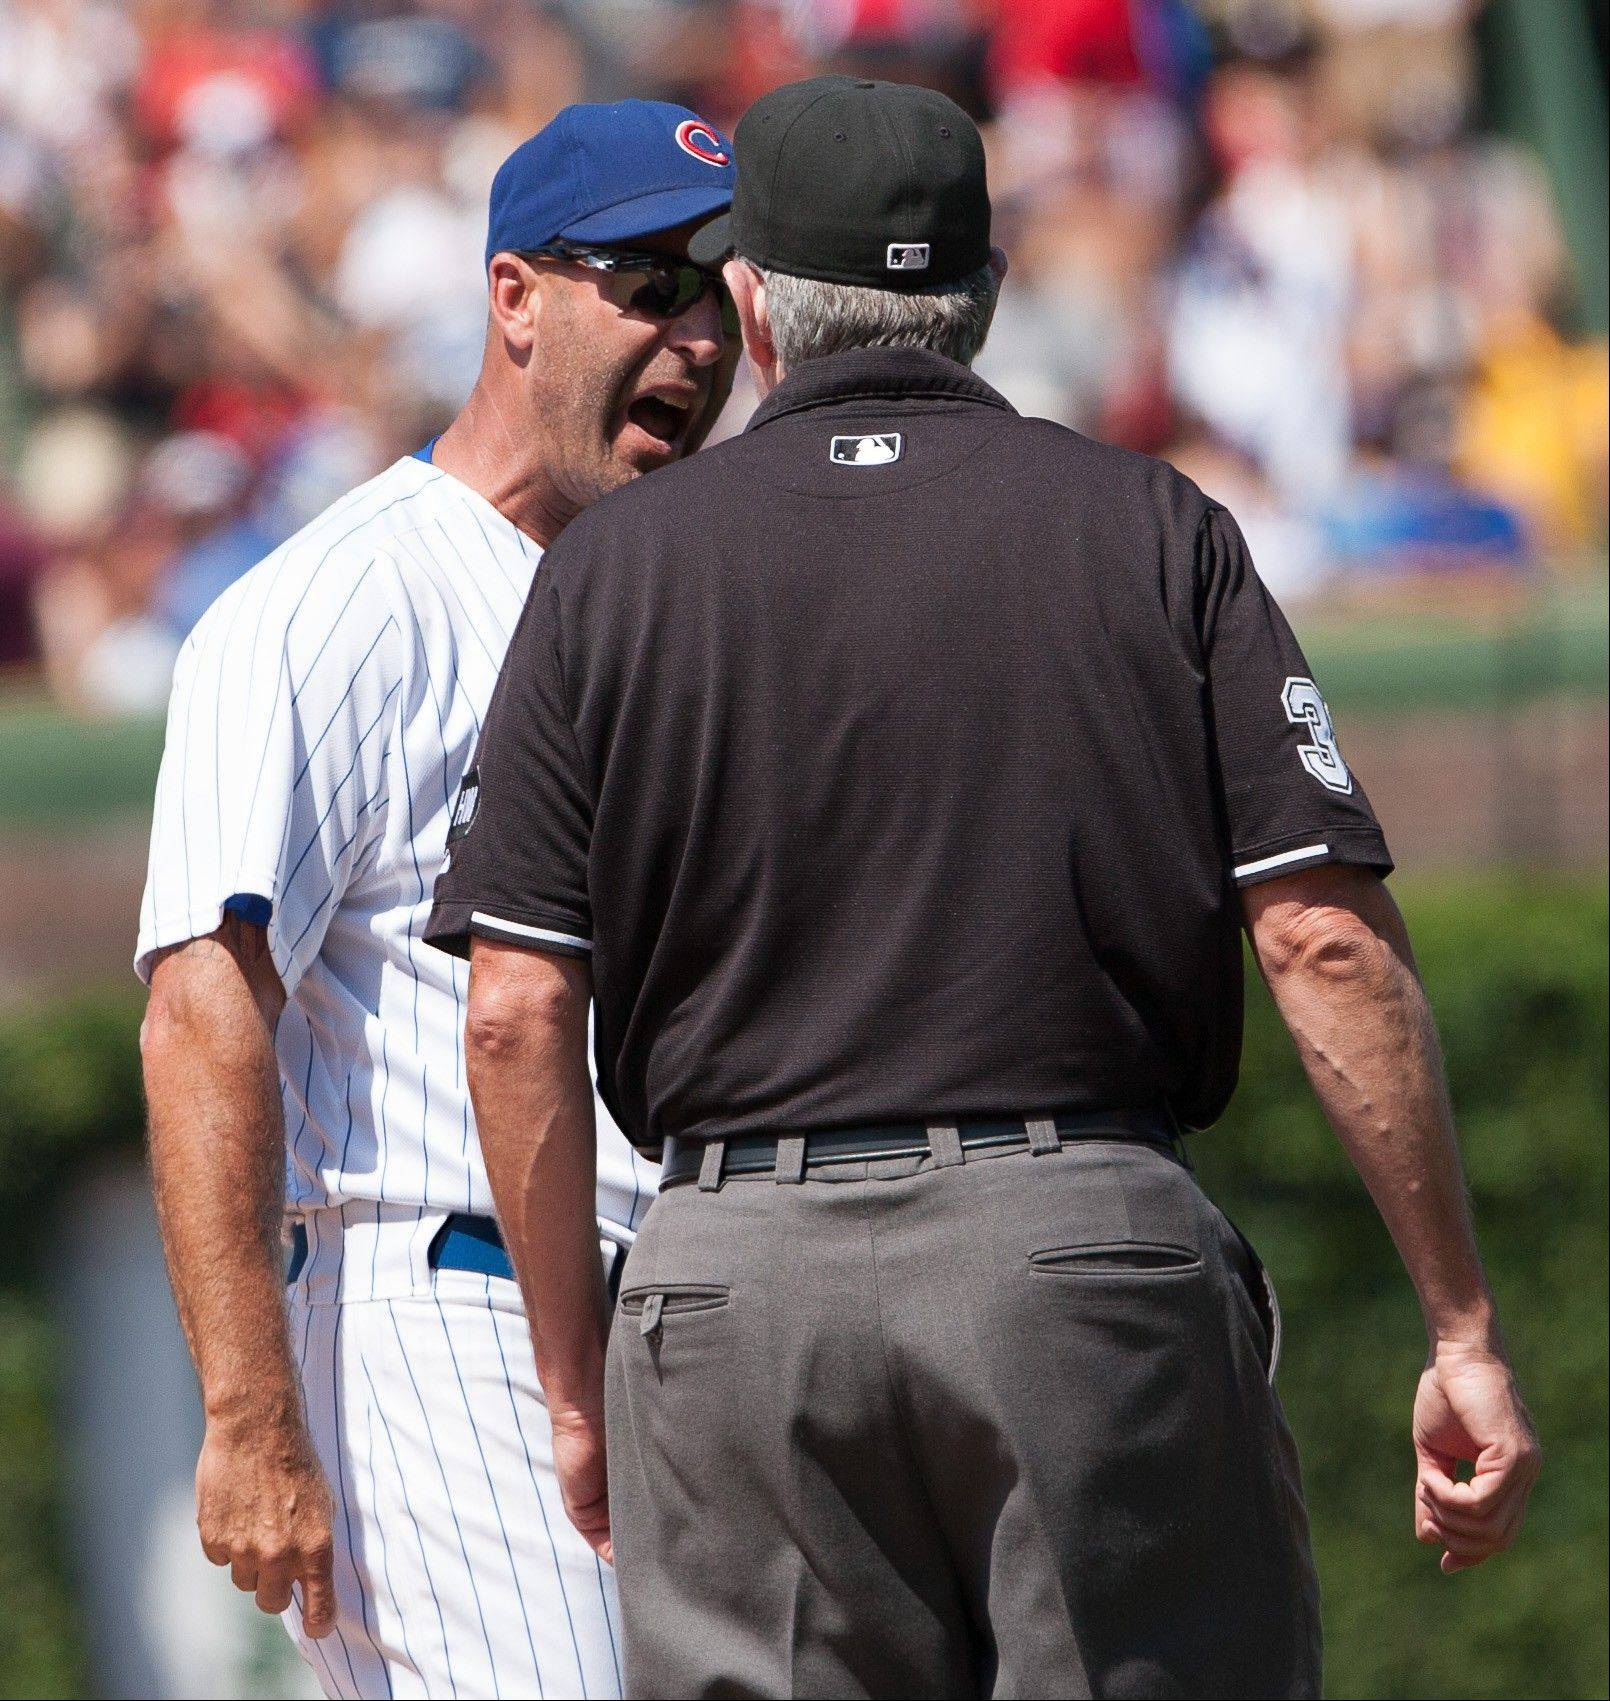 Cubs manager Dale Sveum, left, argues with first base umpire Mike Winters before being tossed from a baseball game against the St Louis Cardinals in Chicago, Saturday, July 28, 2012.